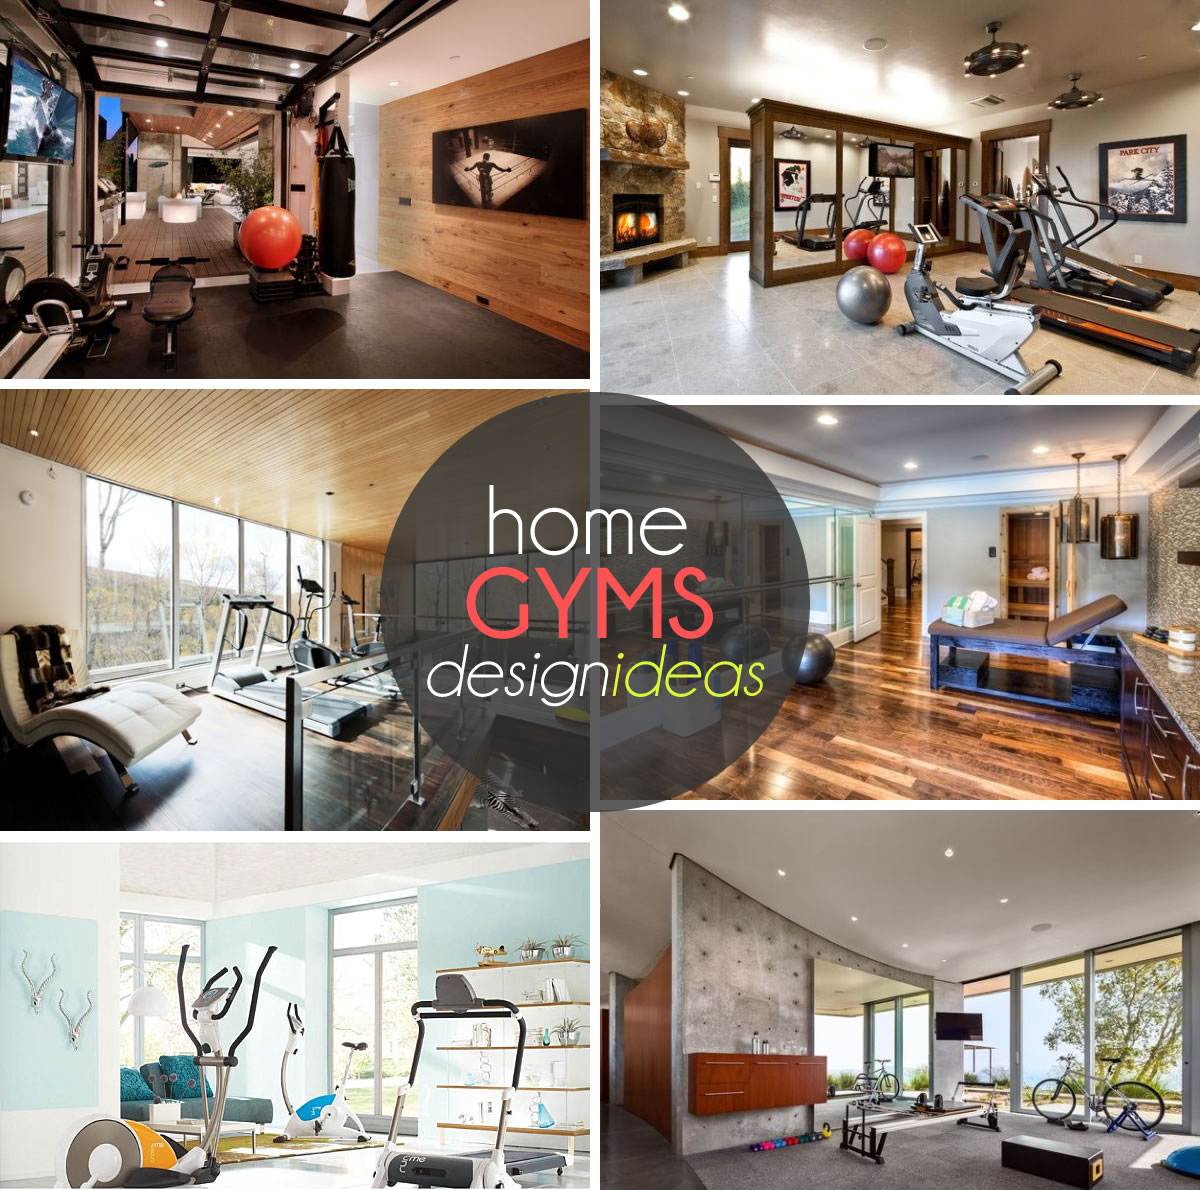 Genial View In Gallery Exquisite Home Gym Design Ideas